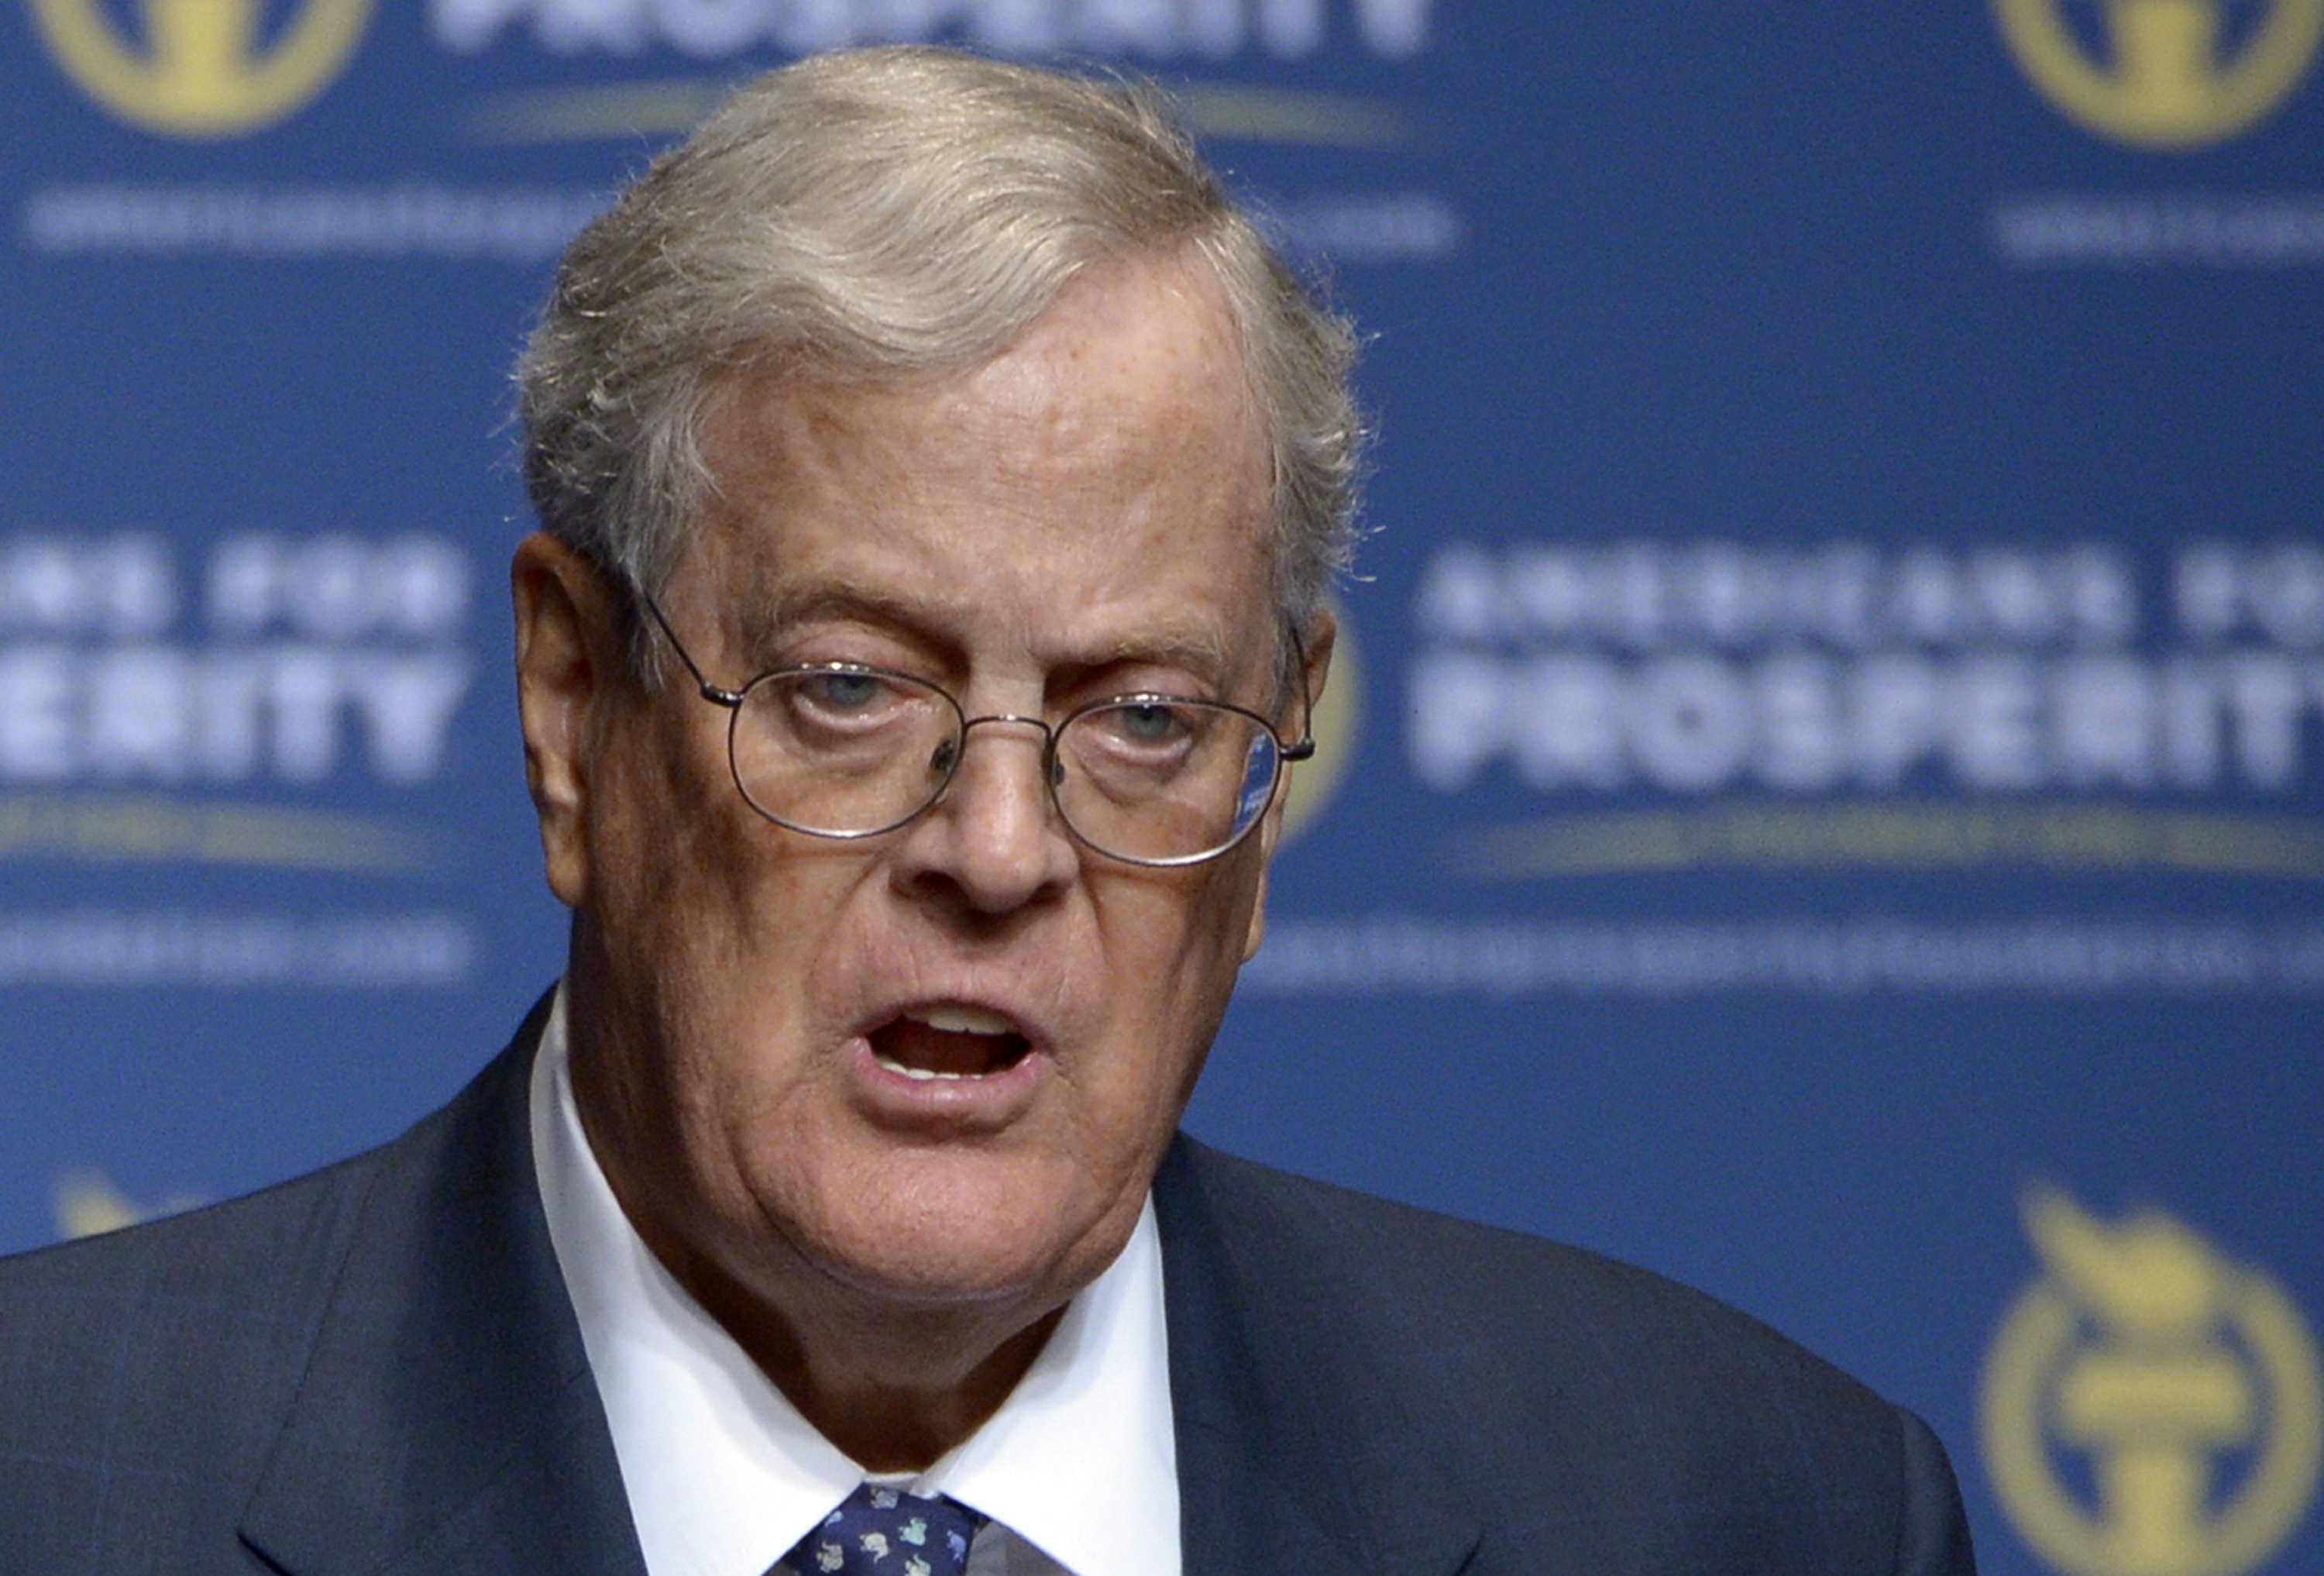 Network backed by Koch brothers is going